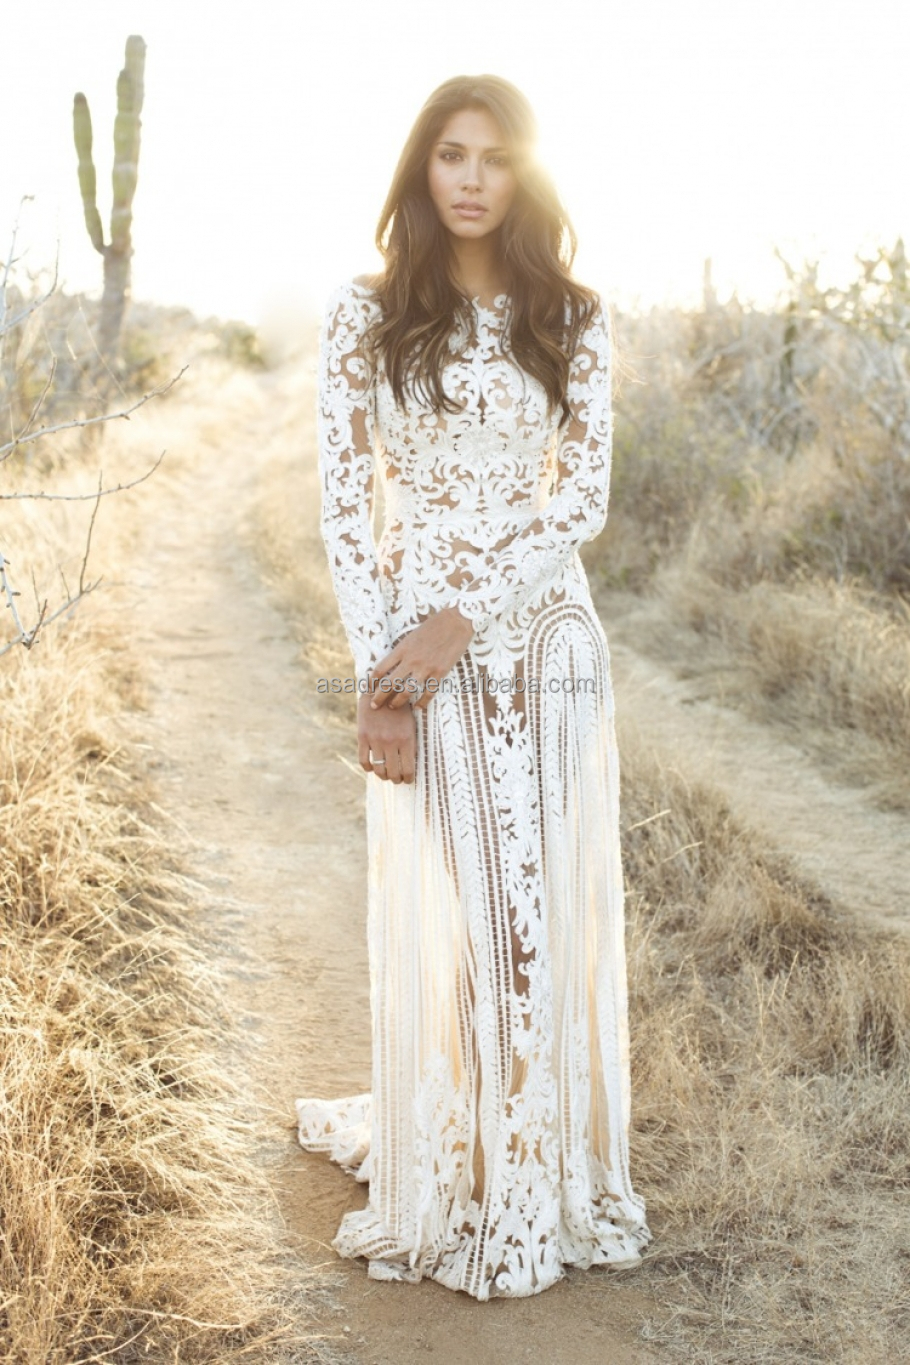 Wedding Dress See Through Lace Wedding Dress bhm1 new trend hollow back bridal lace wedding gown long sleeve see through bohenmian dress